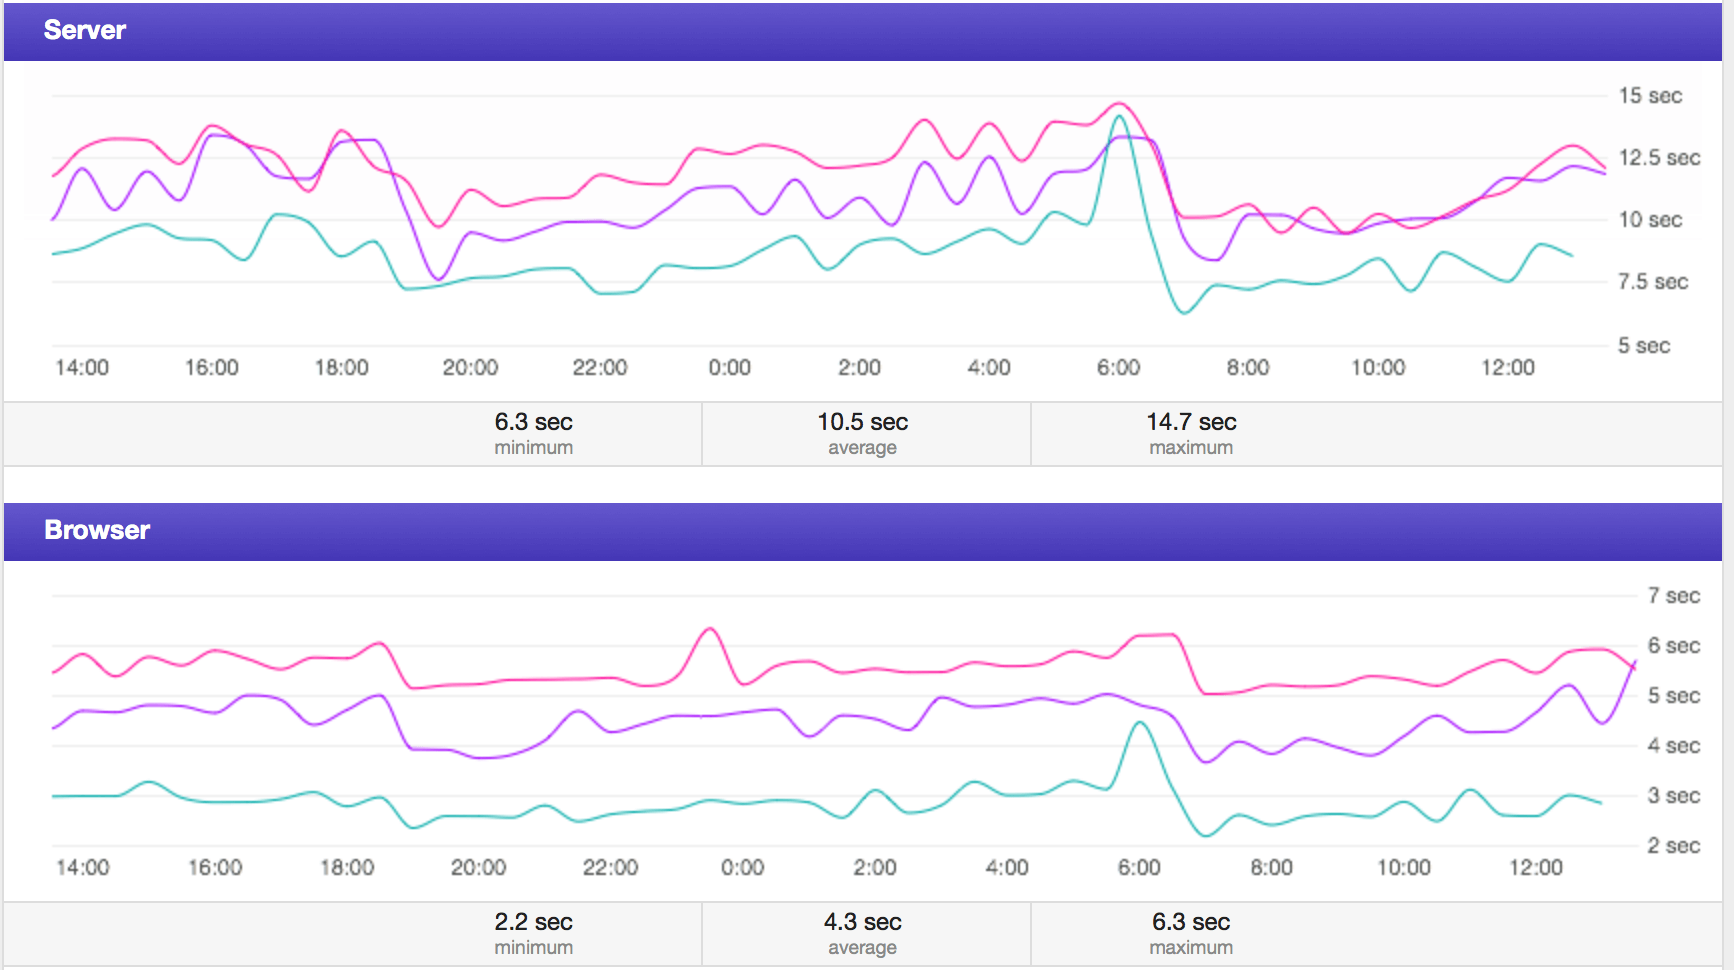 Comparison View segmented by end user experience. Most of the increased latency came from the server component, but that same server is also responsible for serving all of the application's assets, so increased load still affected the browser time.